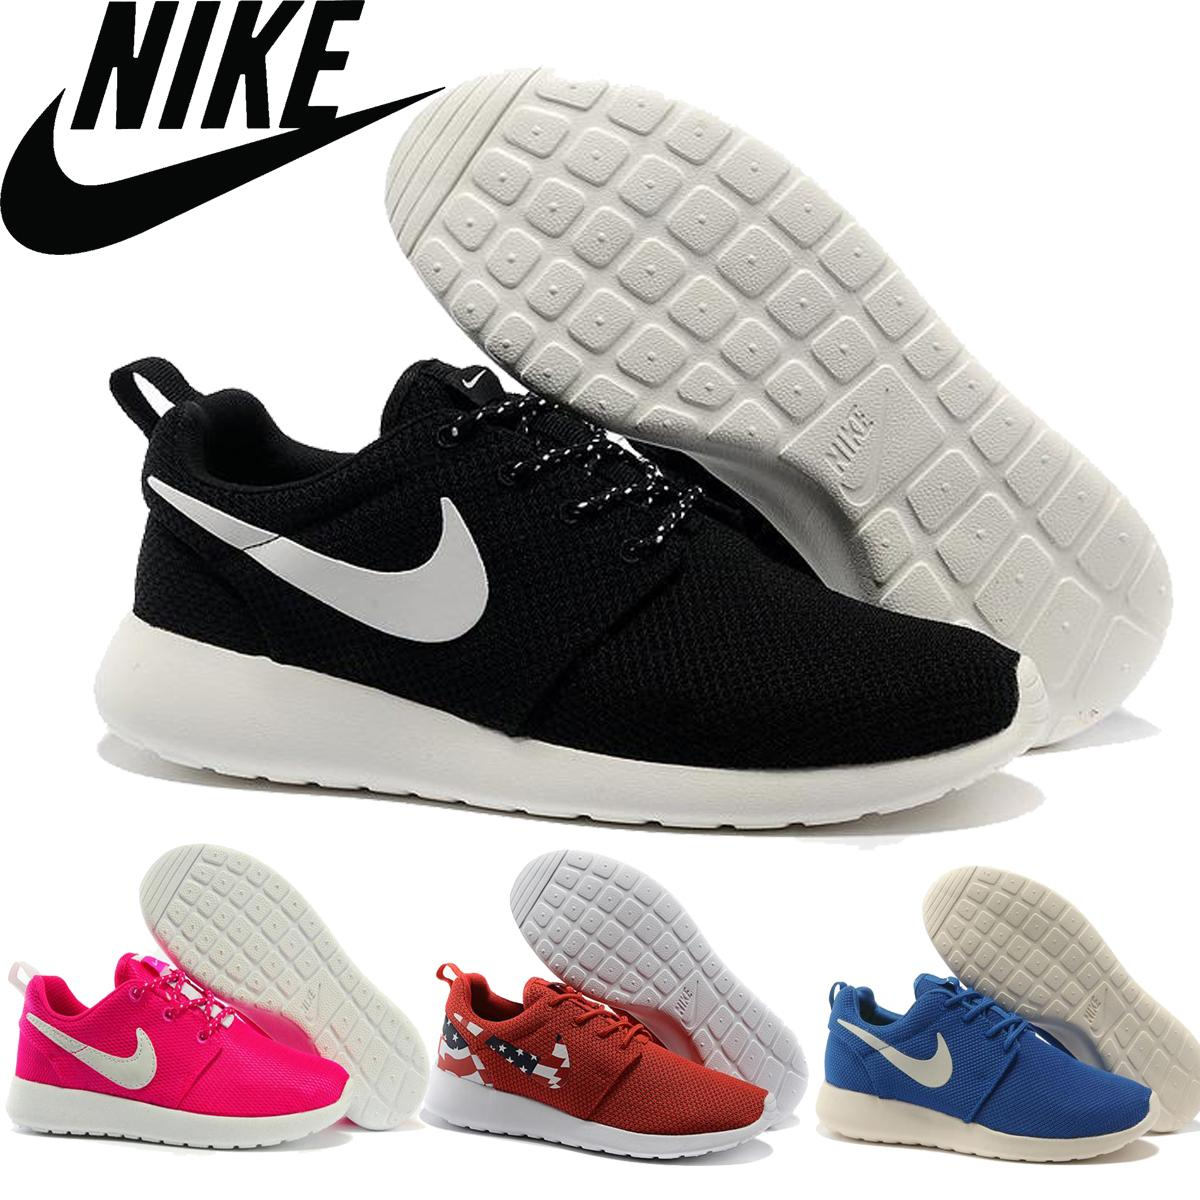 Nike Roshe Run Childrens Shoes Old Boys Girls Running Shoes Cute ...